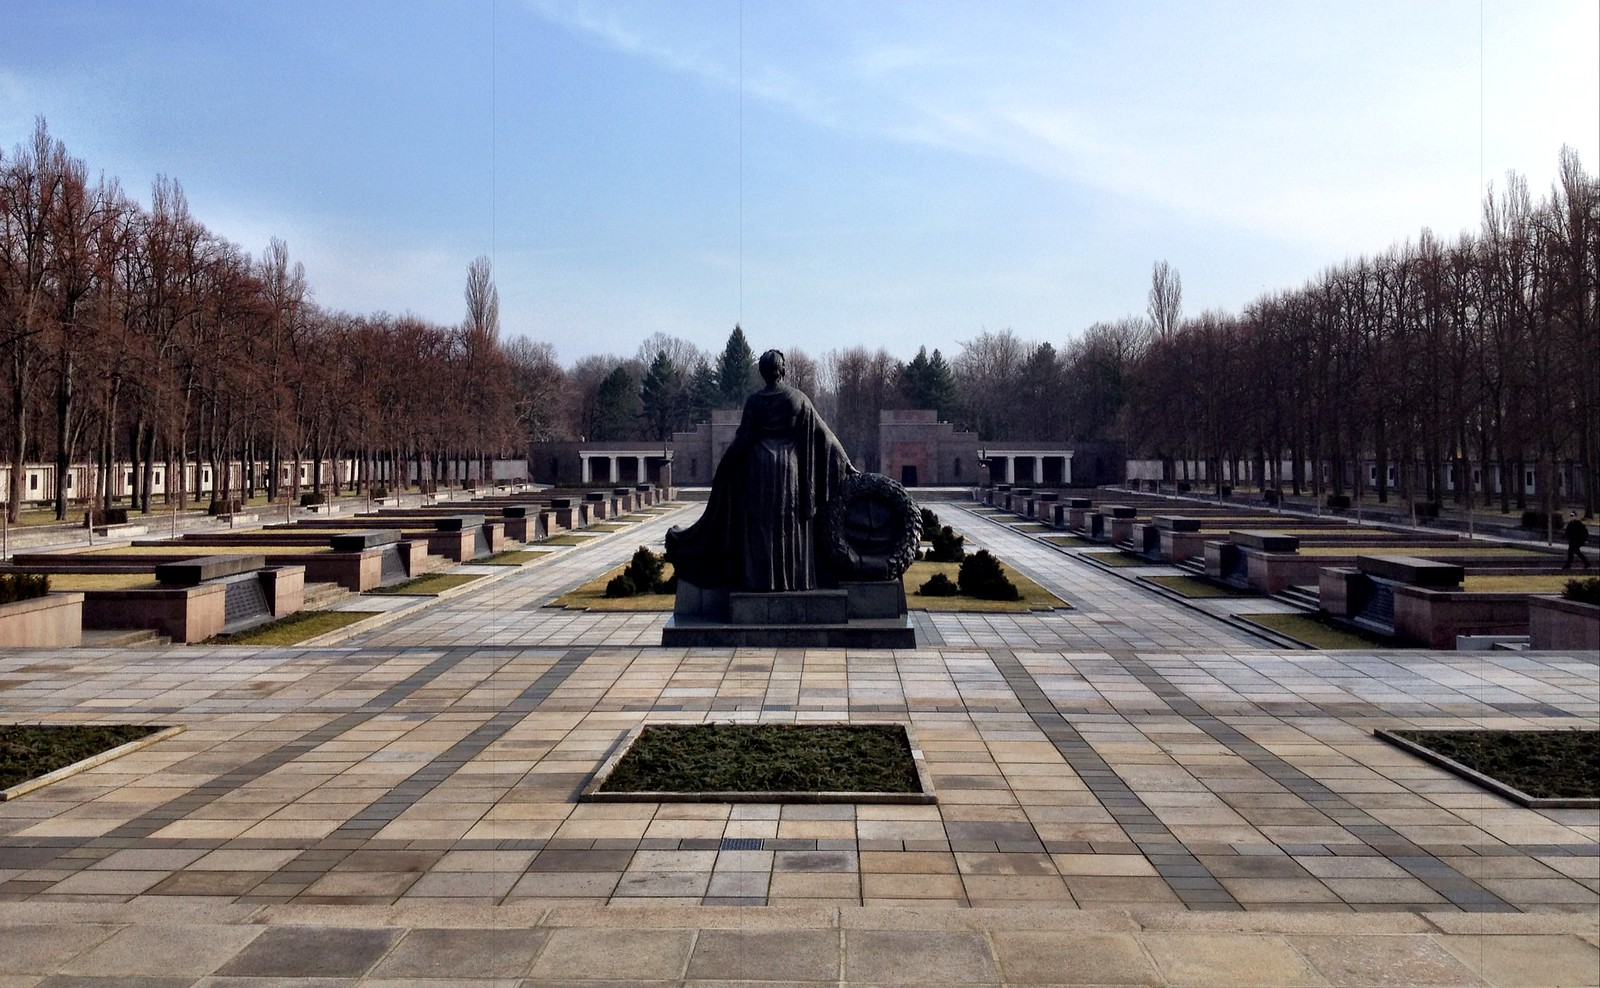 While most people will be familiar with the Soviet War Memorial at Treptow and Tiergarten, hardly any tourists find themselves visiting the Soviet War Memorial in the Schönholzer Heide. This is such a pitty because the memorial is beautiful.